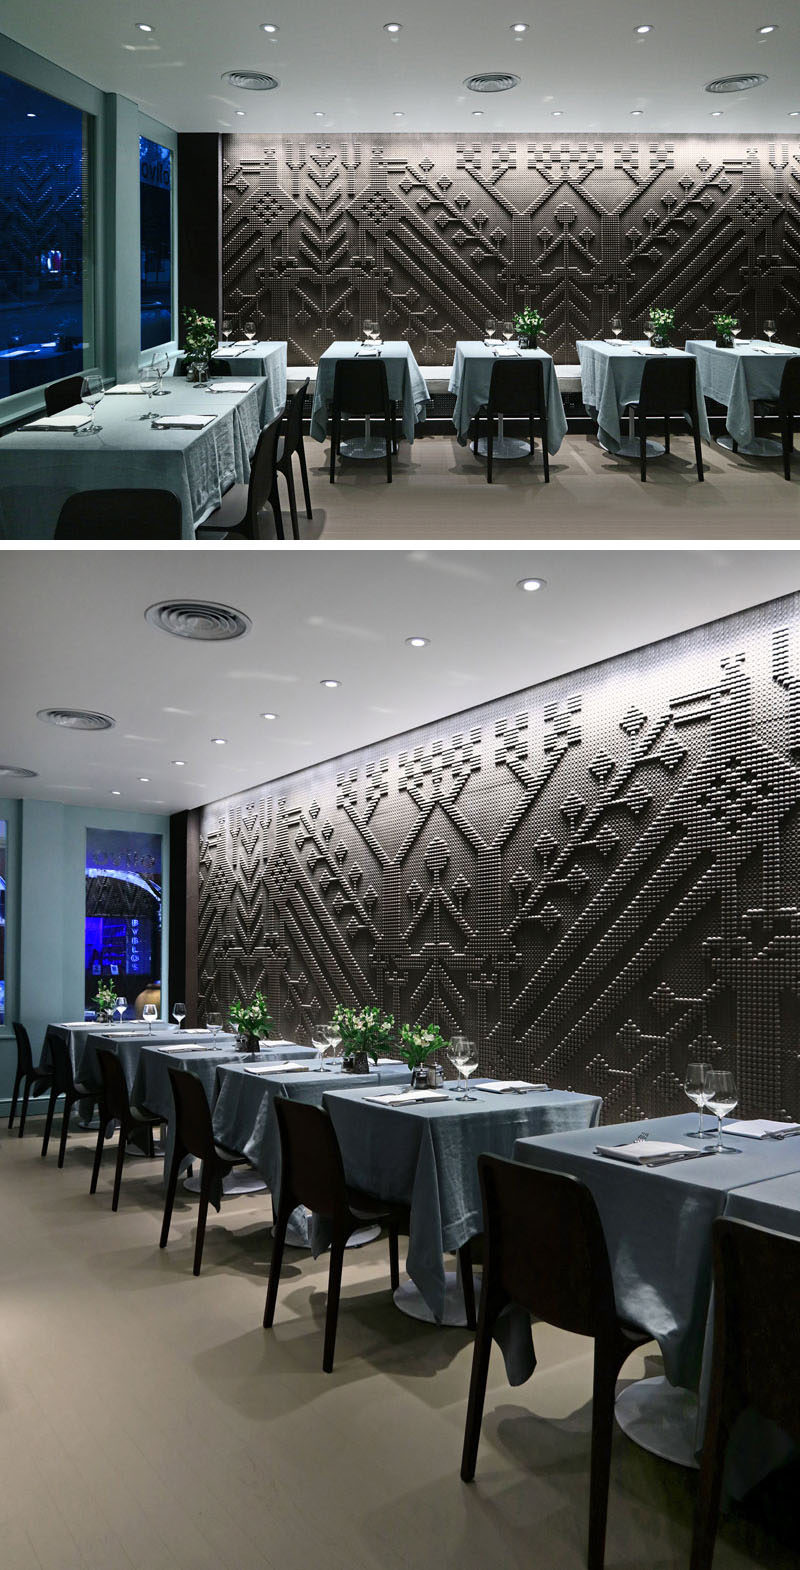 Wall Decor Ideas - Once in the main dining room of this contemporary restaurant, you're eye is immediately drawn to the the first of two large wall tapestries made from finely chiseled natural stone.